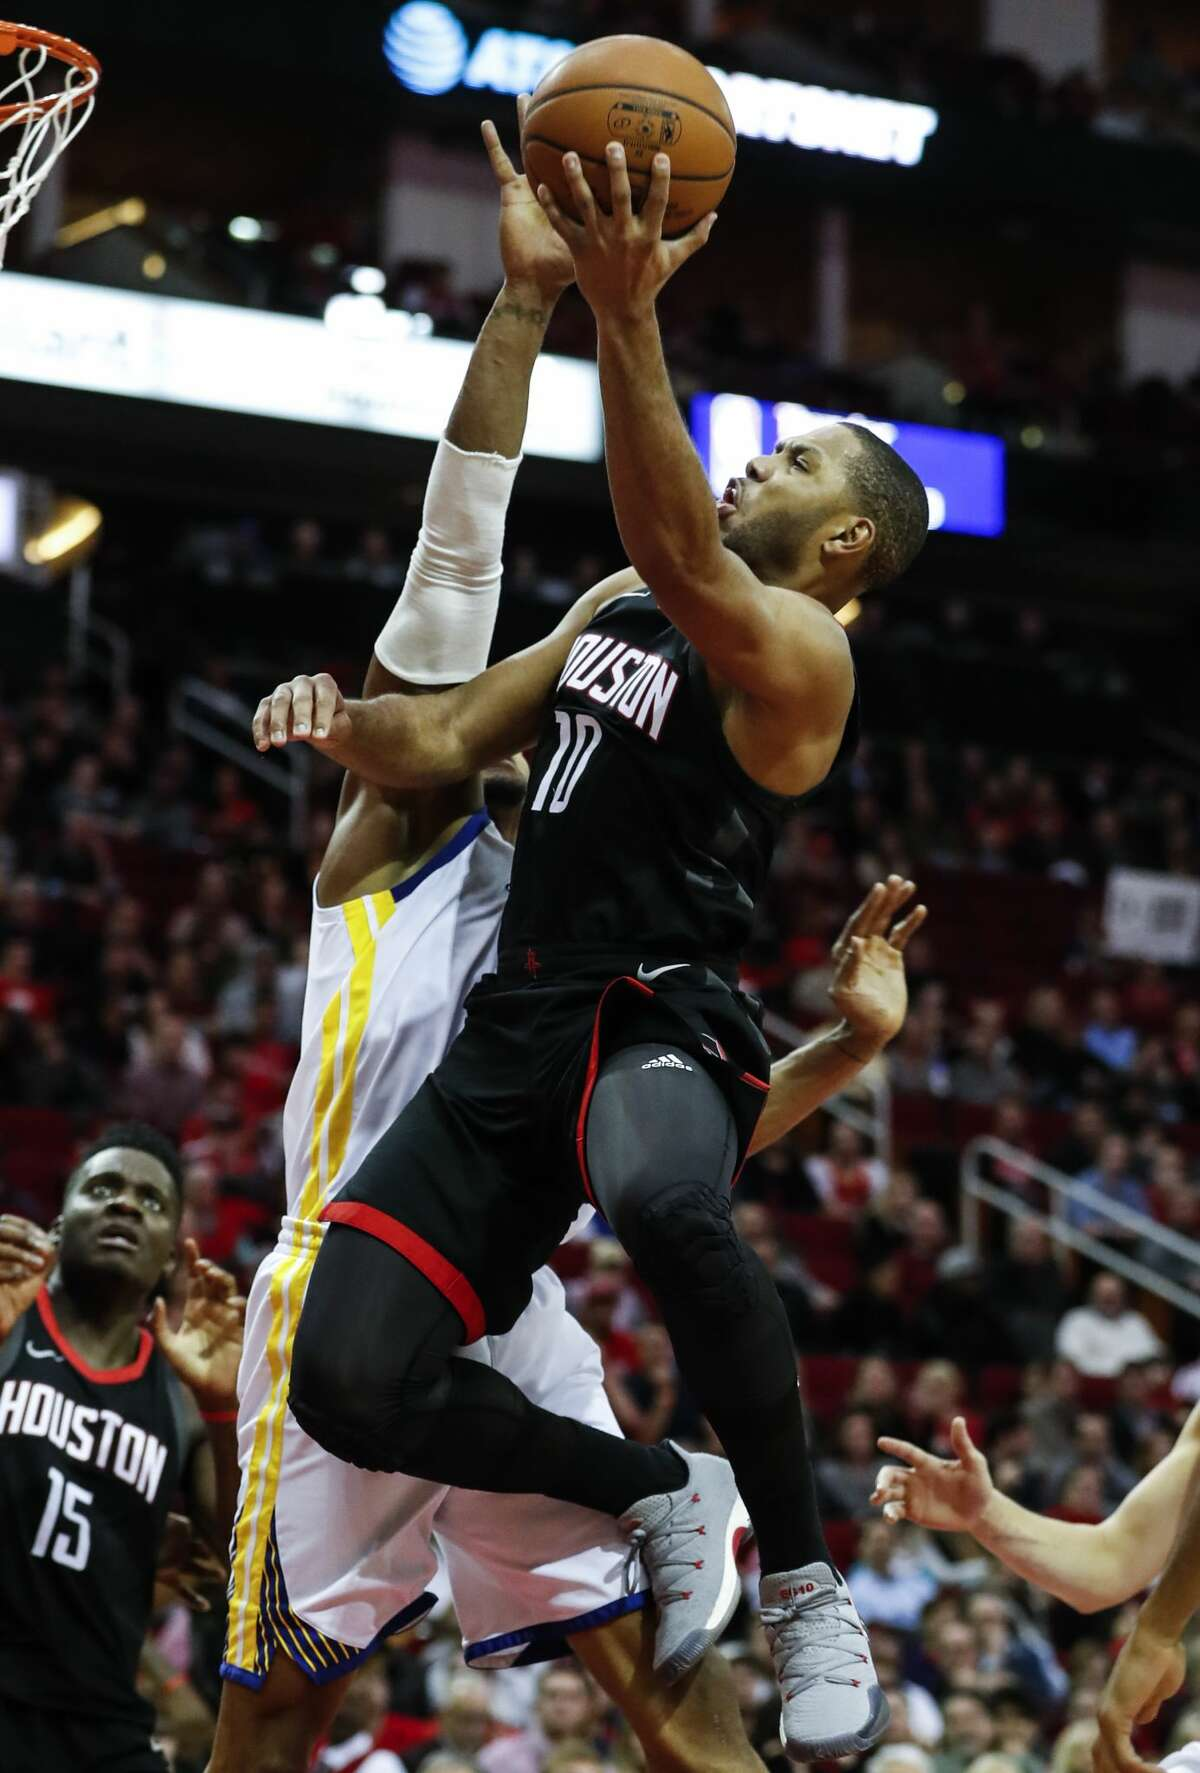 Houston Rockets guard Eric Gordon (10) drives to the basket against the Golden State Warriors during the second quarter of an NBA basketball game at Toyota Center on Thursday, Jan. 4, 2018, in Houston. ( Brett Coomer / Houston Chronicle )